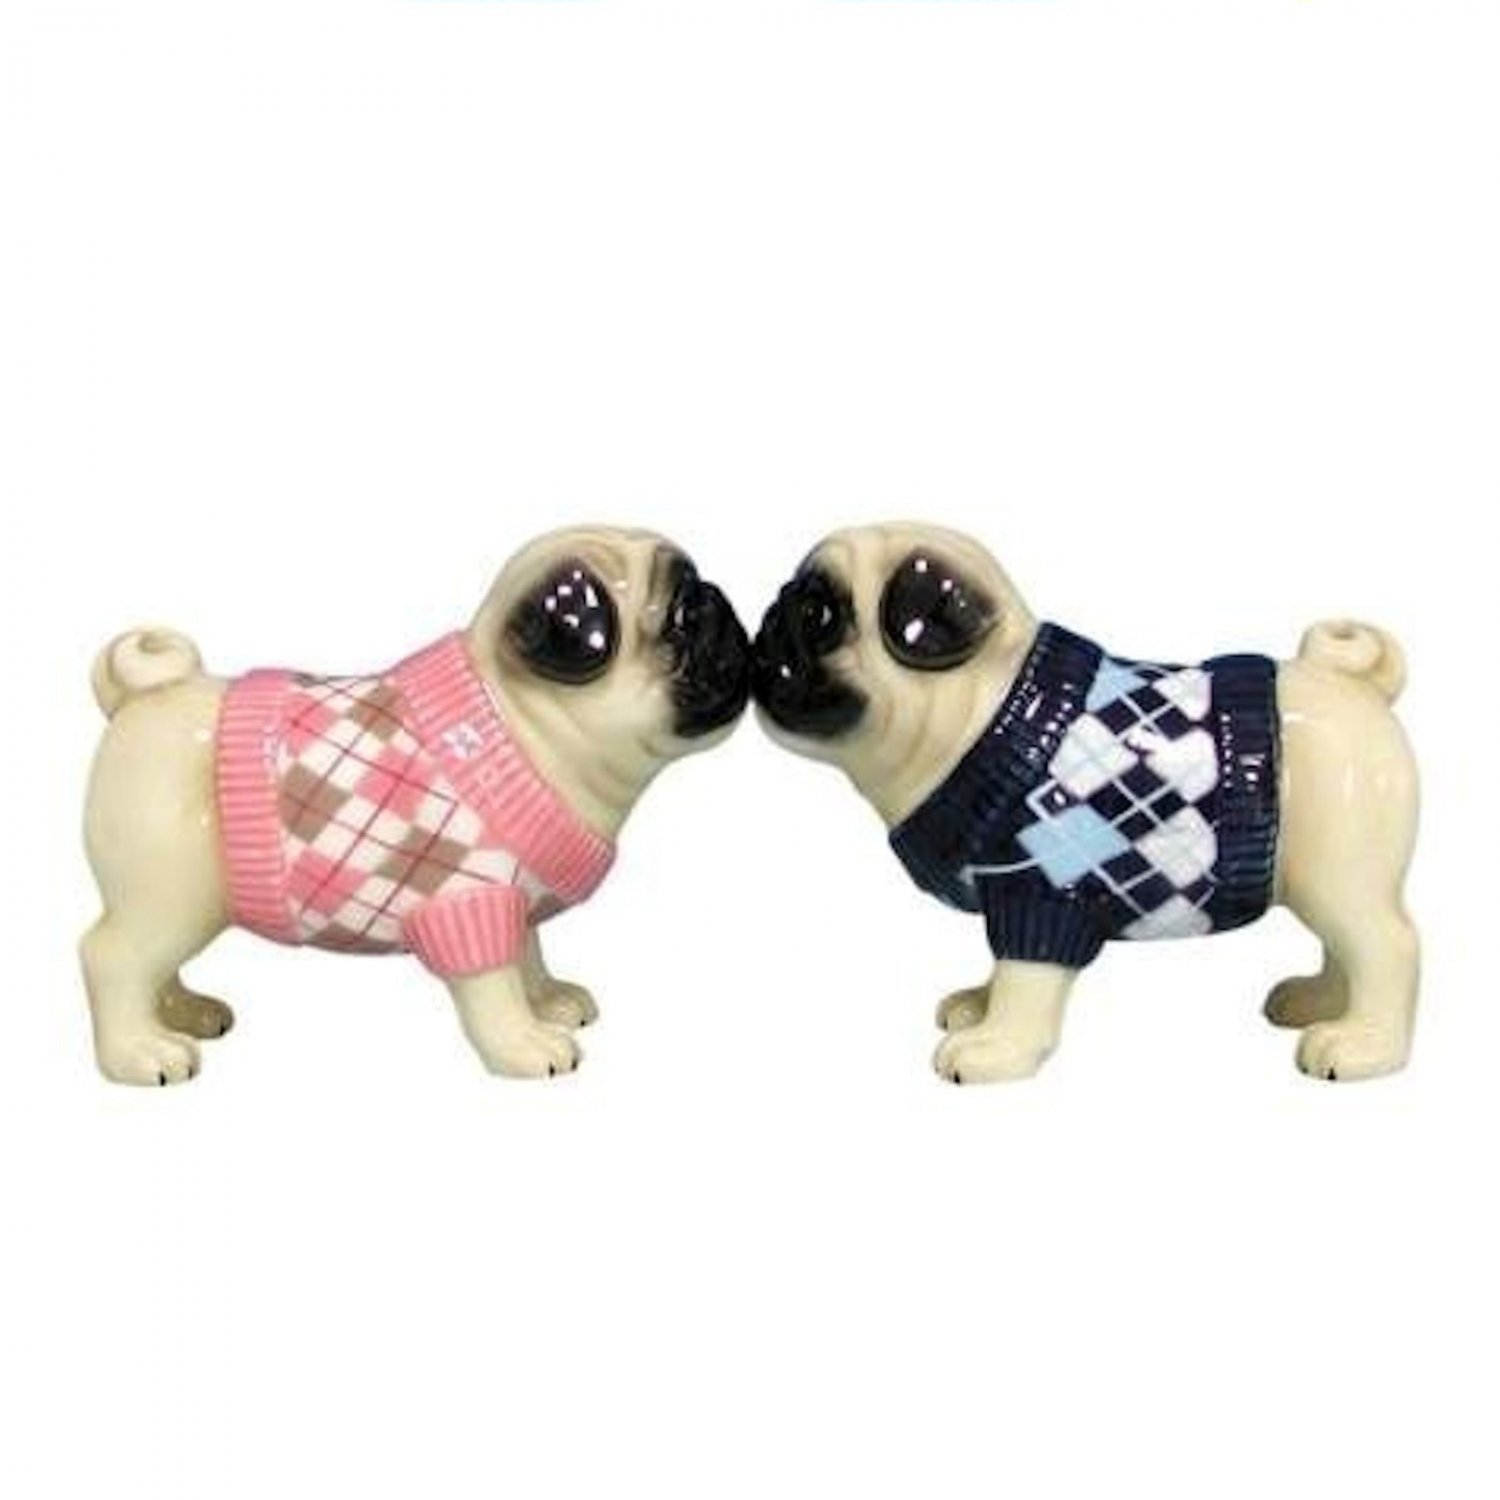 MWAH Pug Couple Dog Wearing Sweater Salt and Pepper